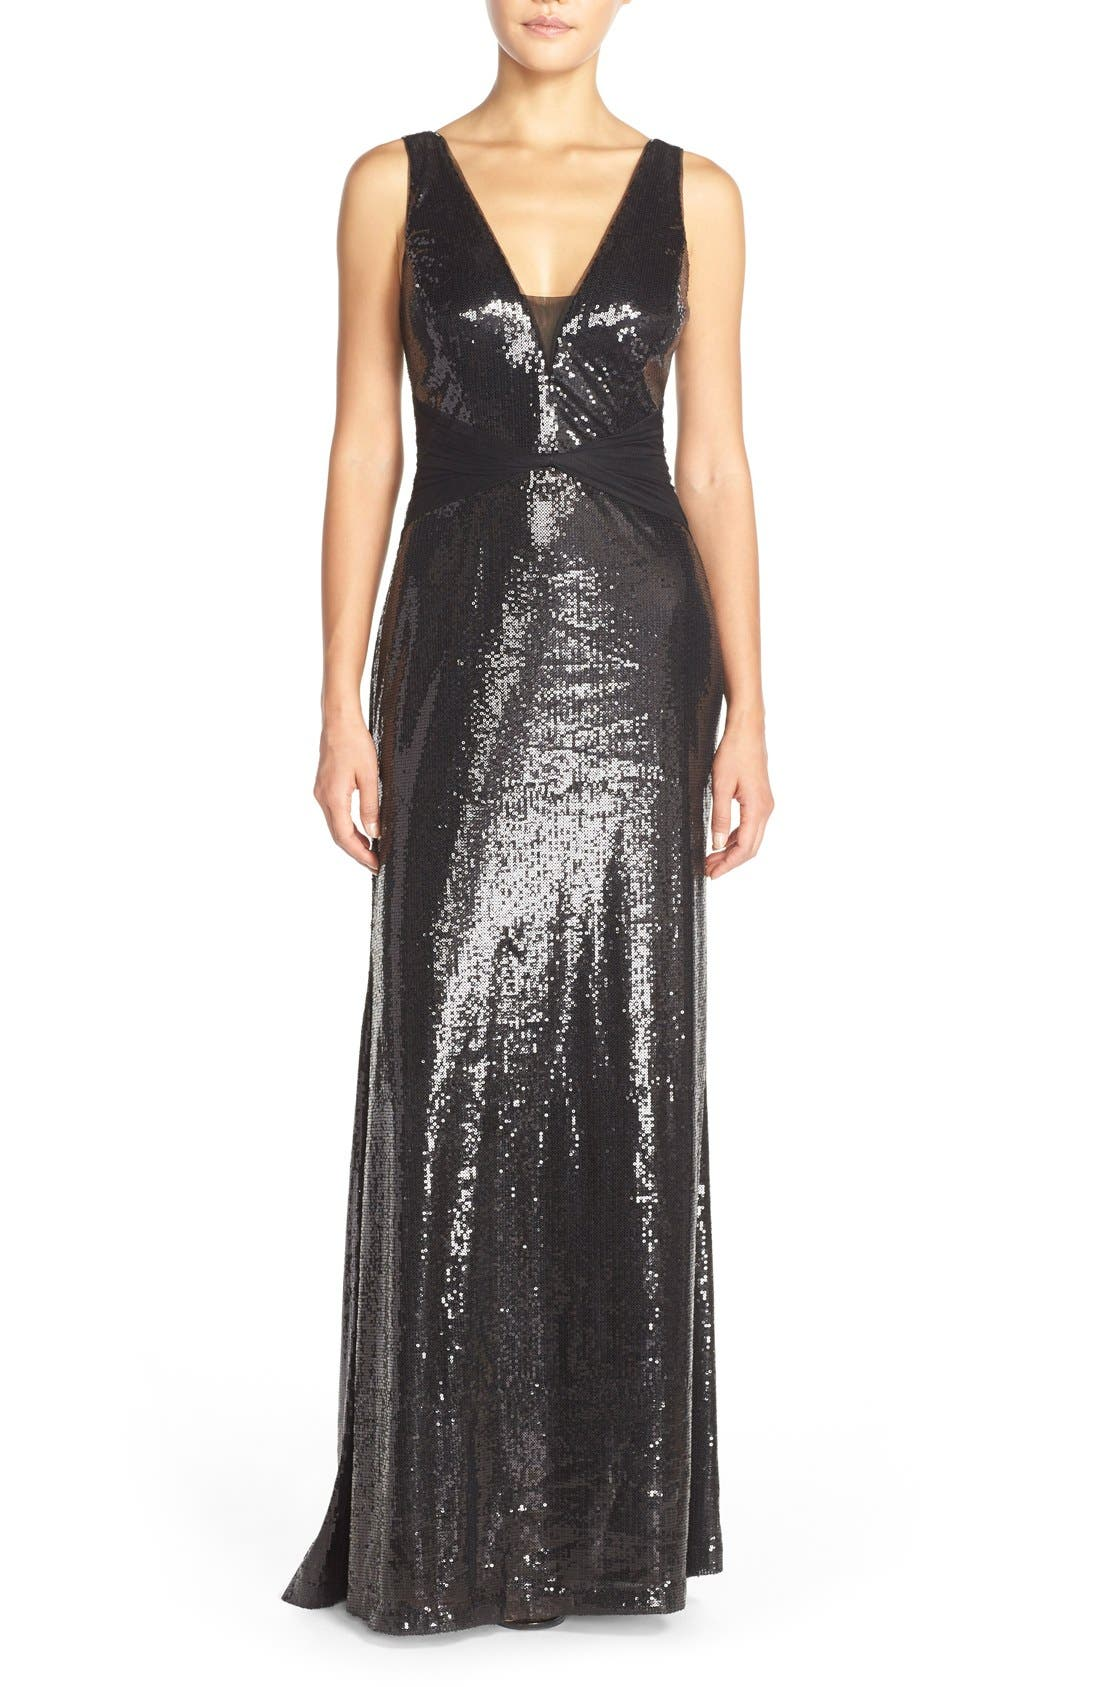 Alternate Image 1 Selected - Vera Wang Mesh Inset Sequin Gown